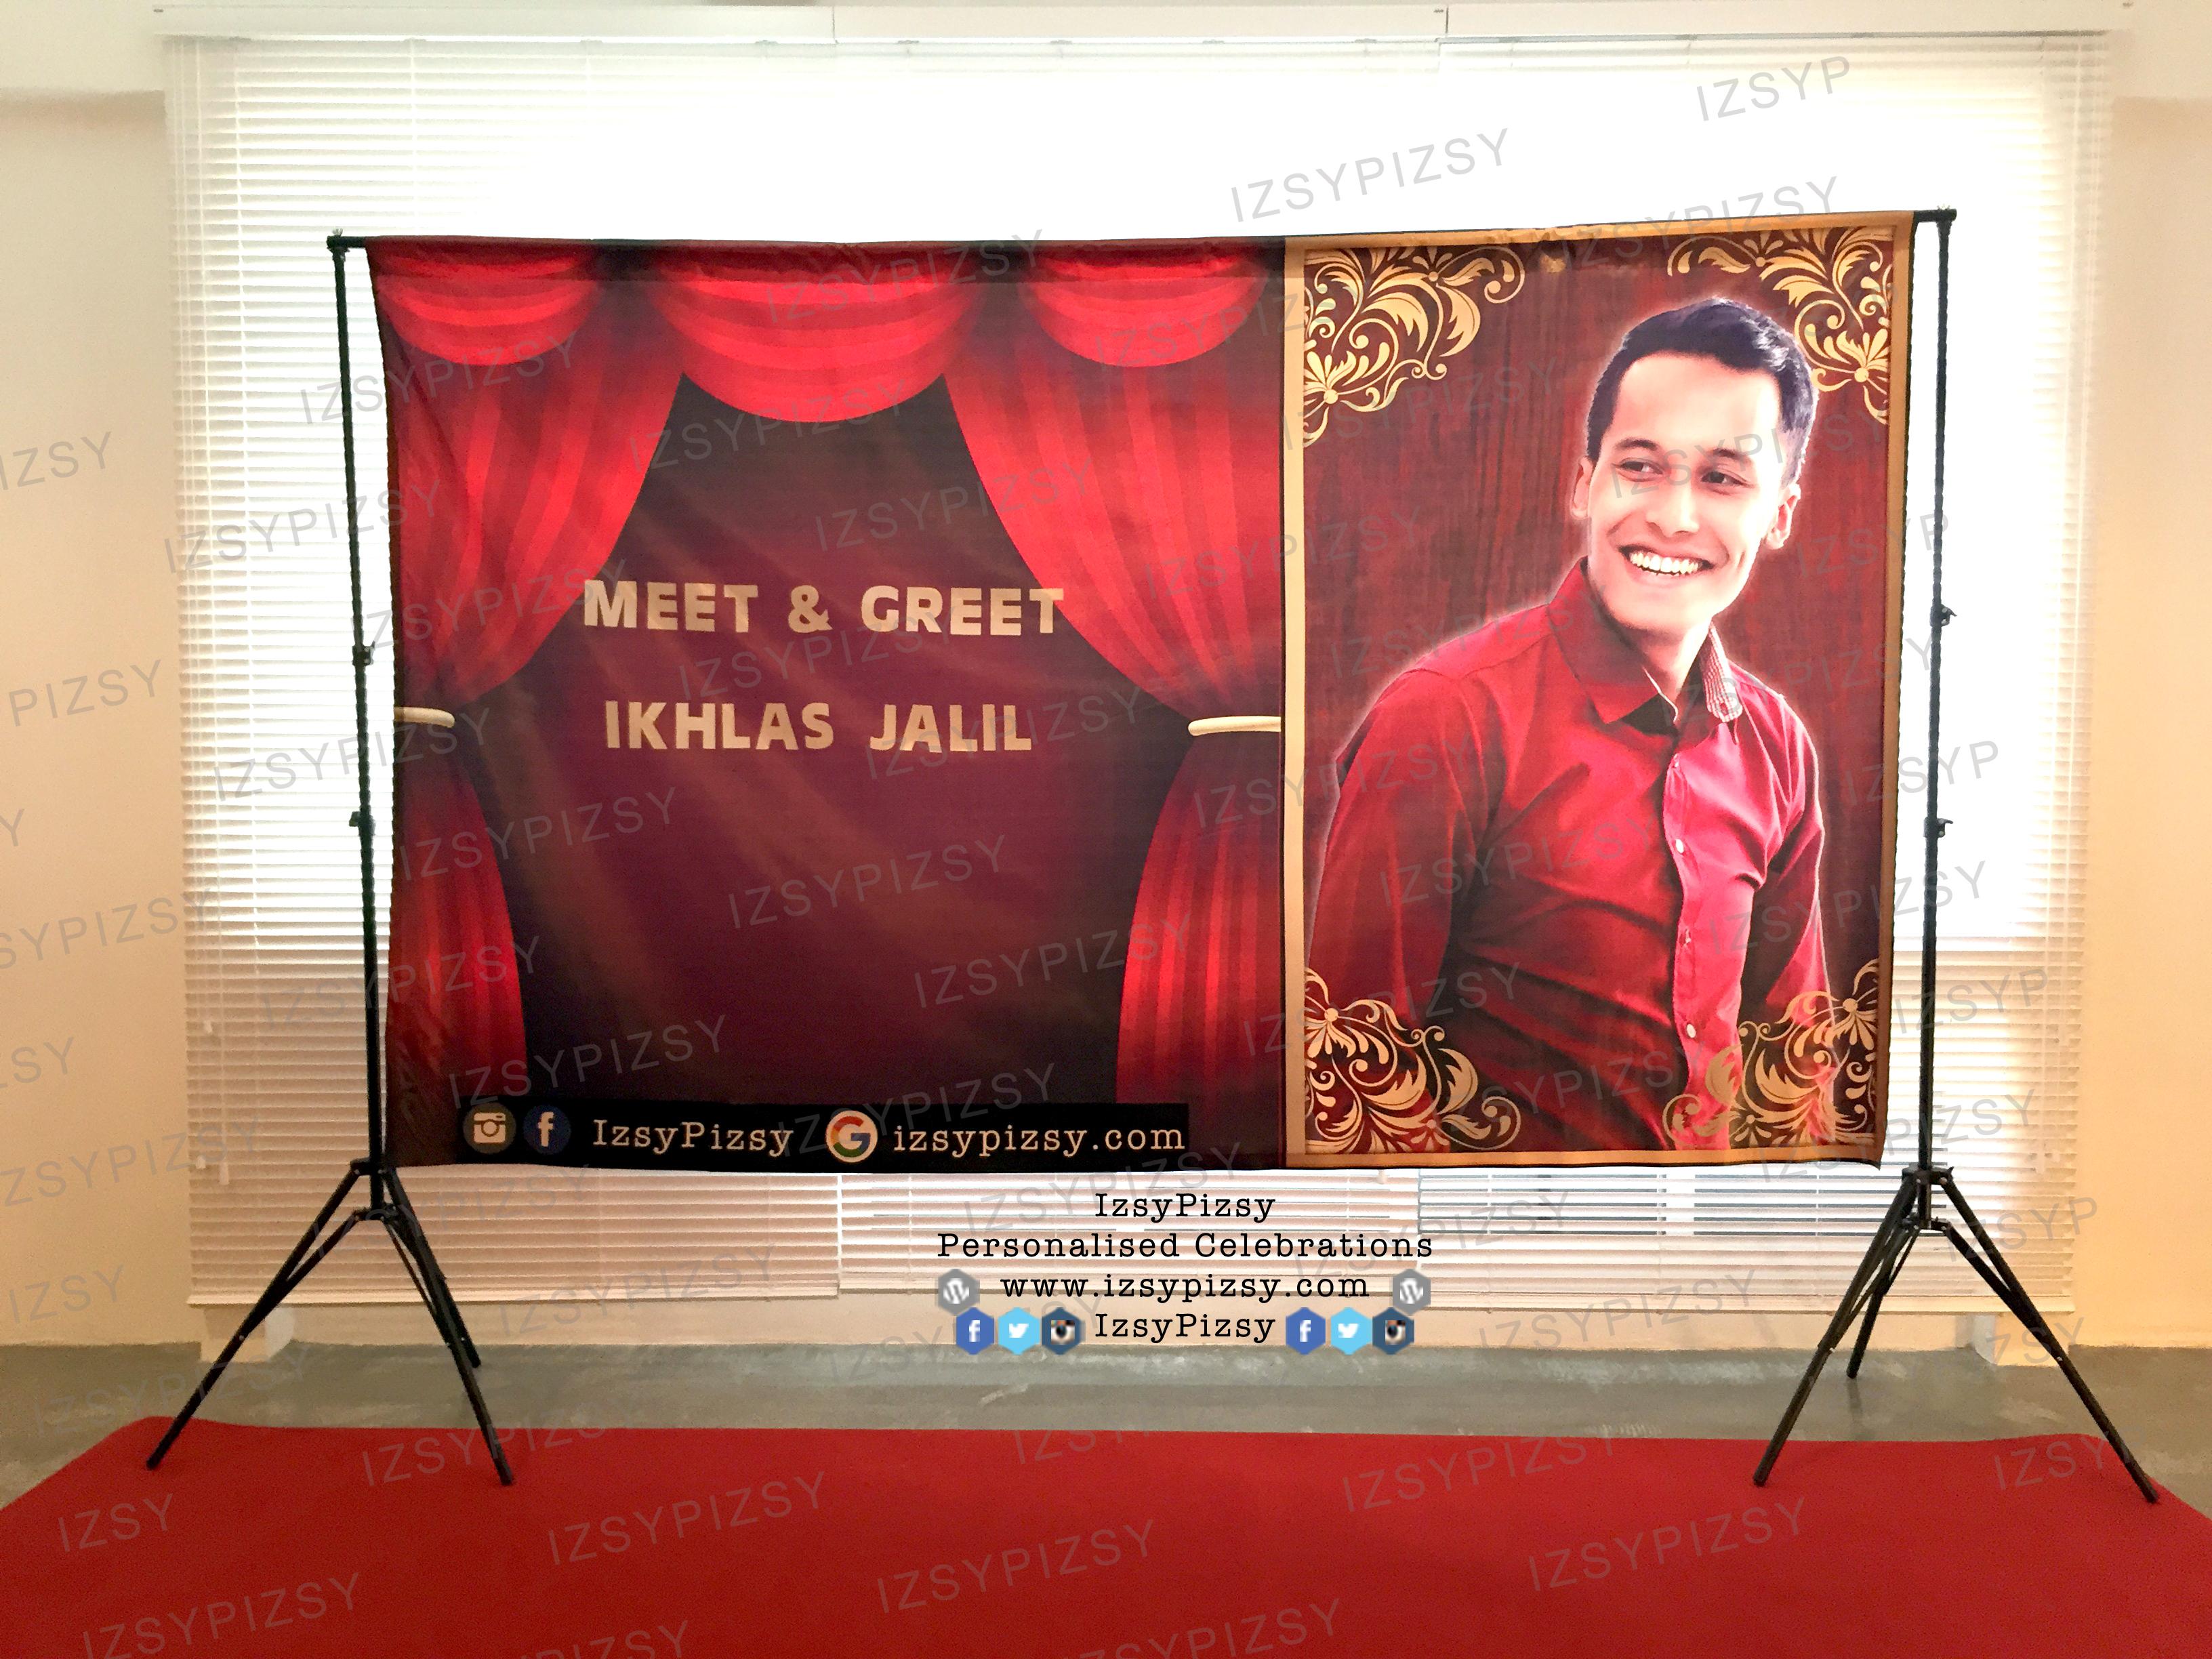 ikhlas-jalil-meet-and-greet-event-party-planner-malaysia-murah-celebrity-artist-backdrop-banner-print-murah-decoration-malaysia